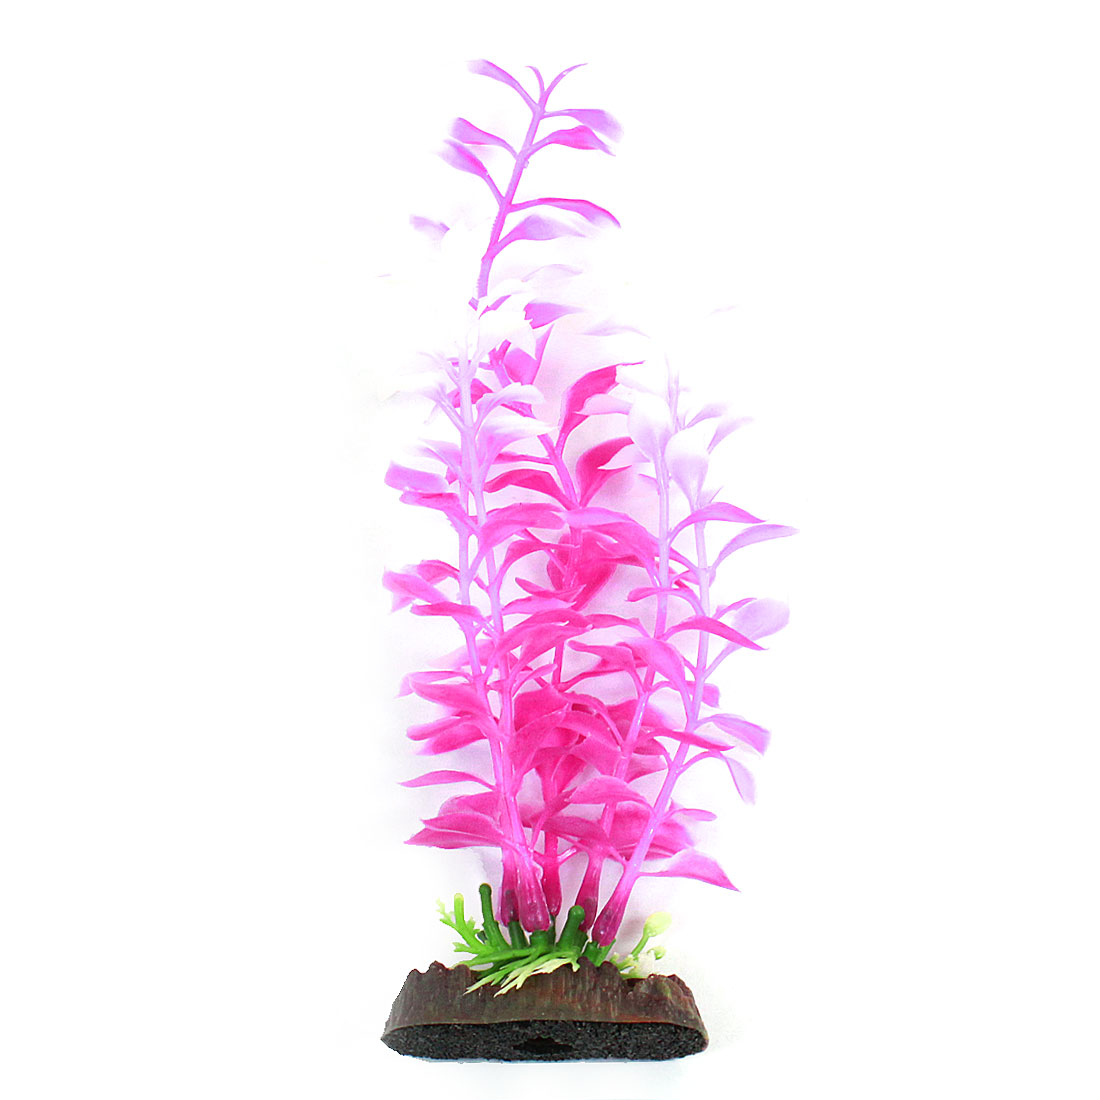 Aquarium Tank Emulational Glow Light Underwater Grass Fuchsia White 21cm High